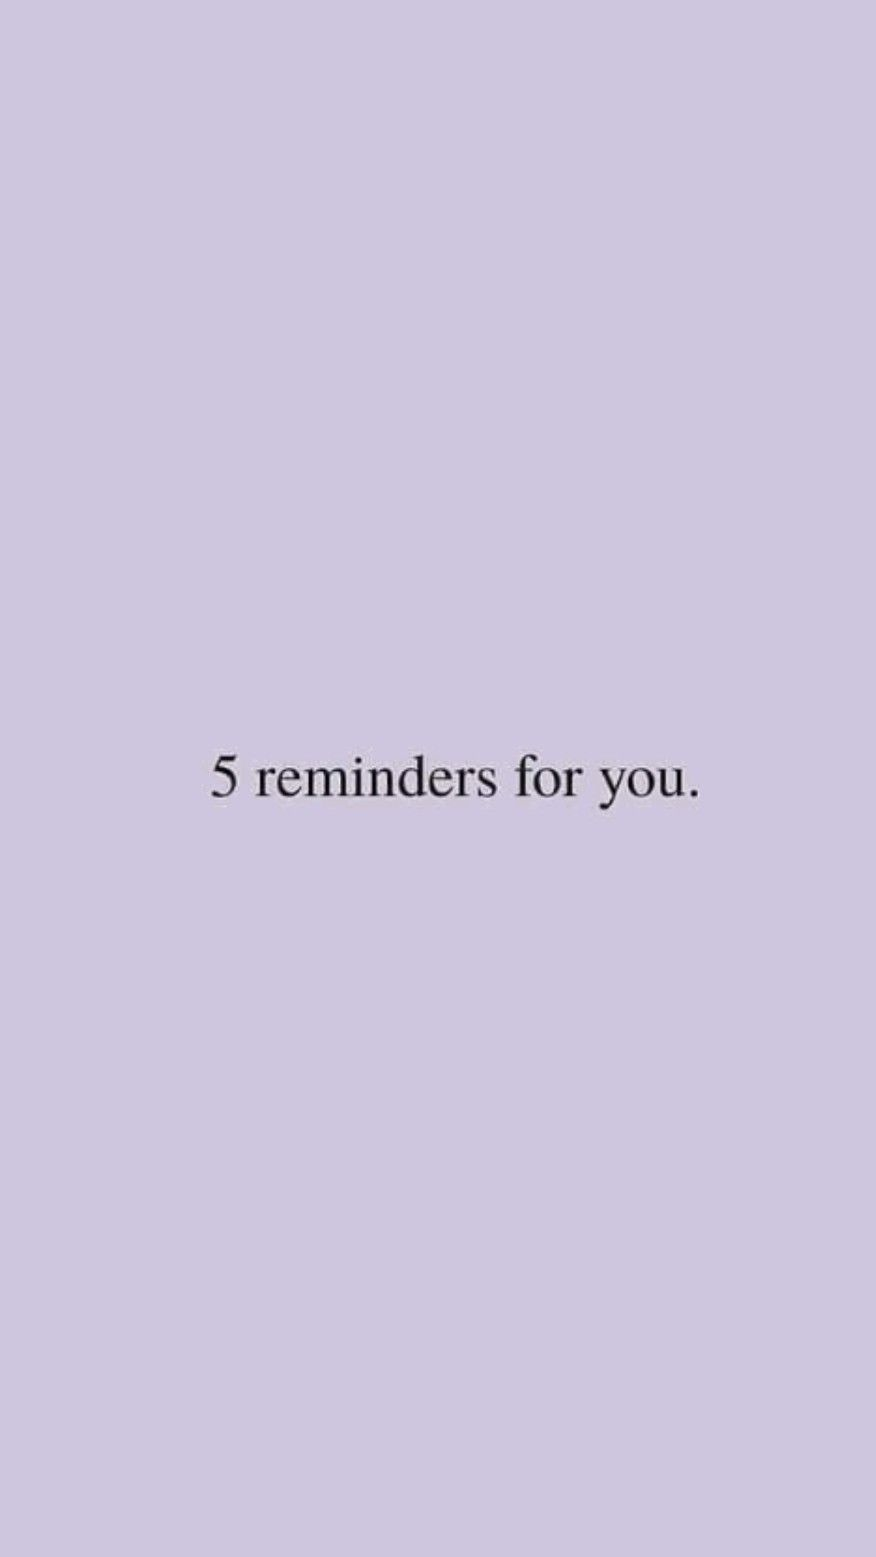 5 Reminder for you